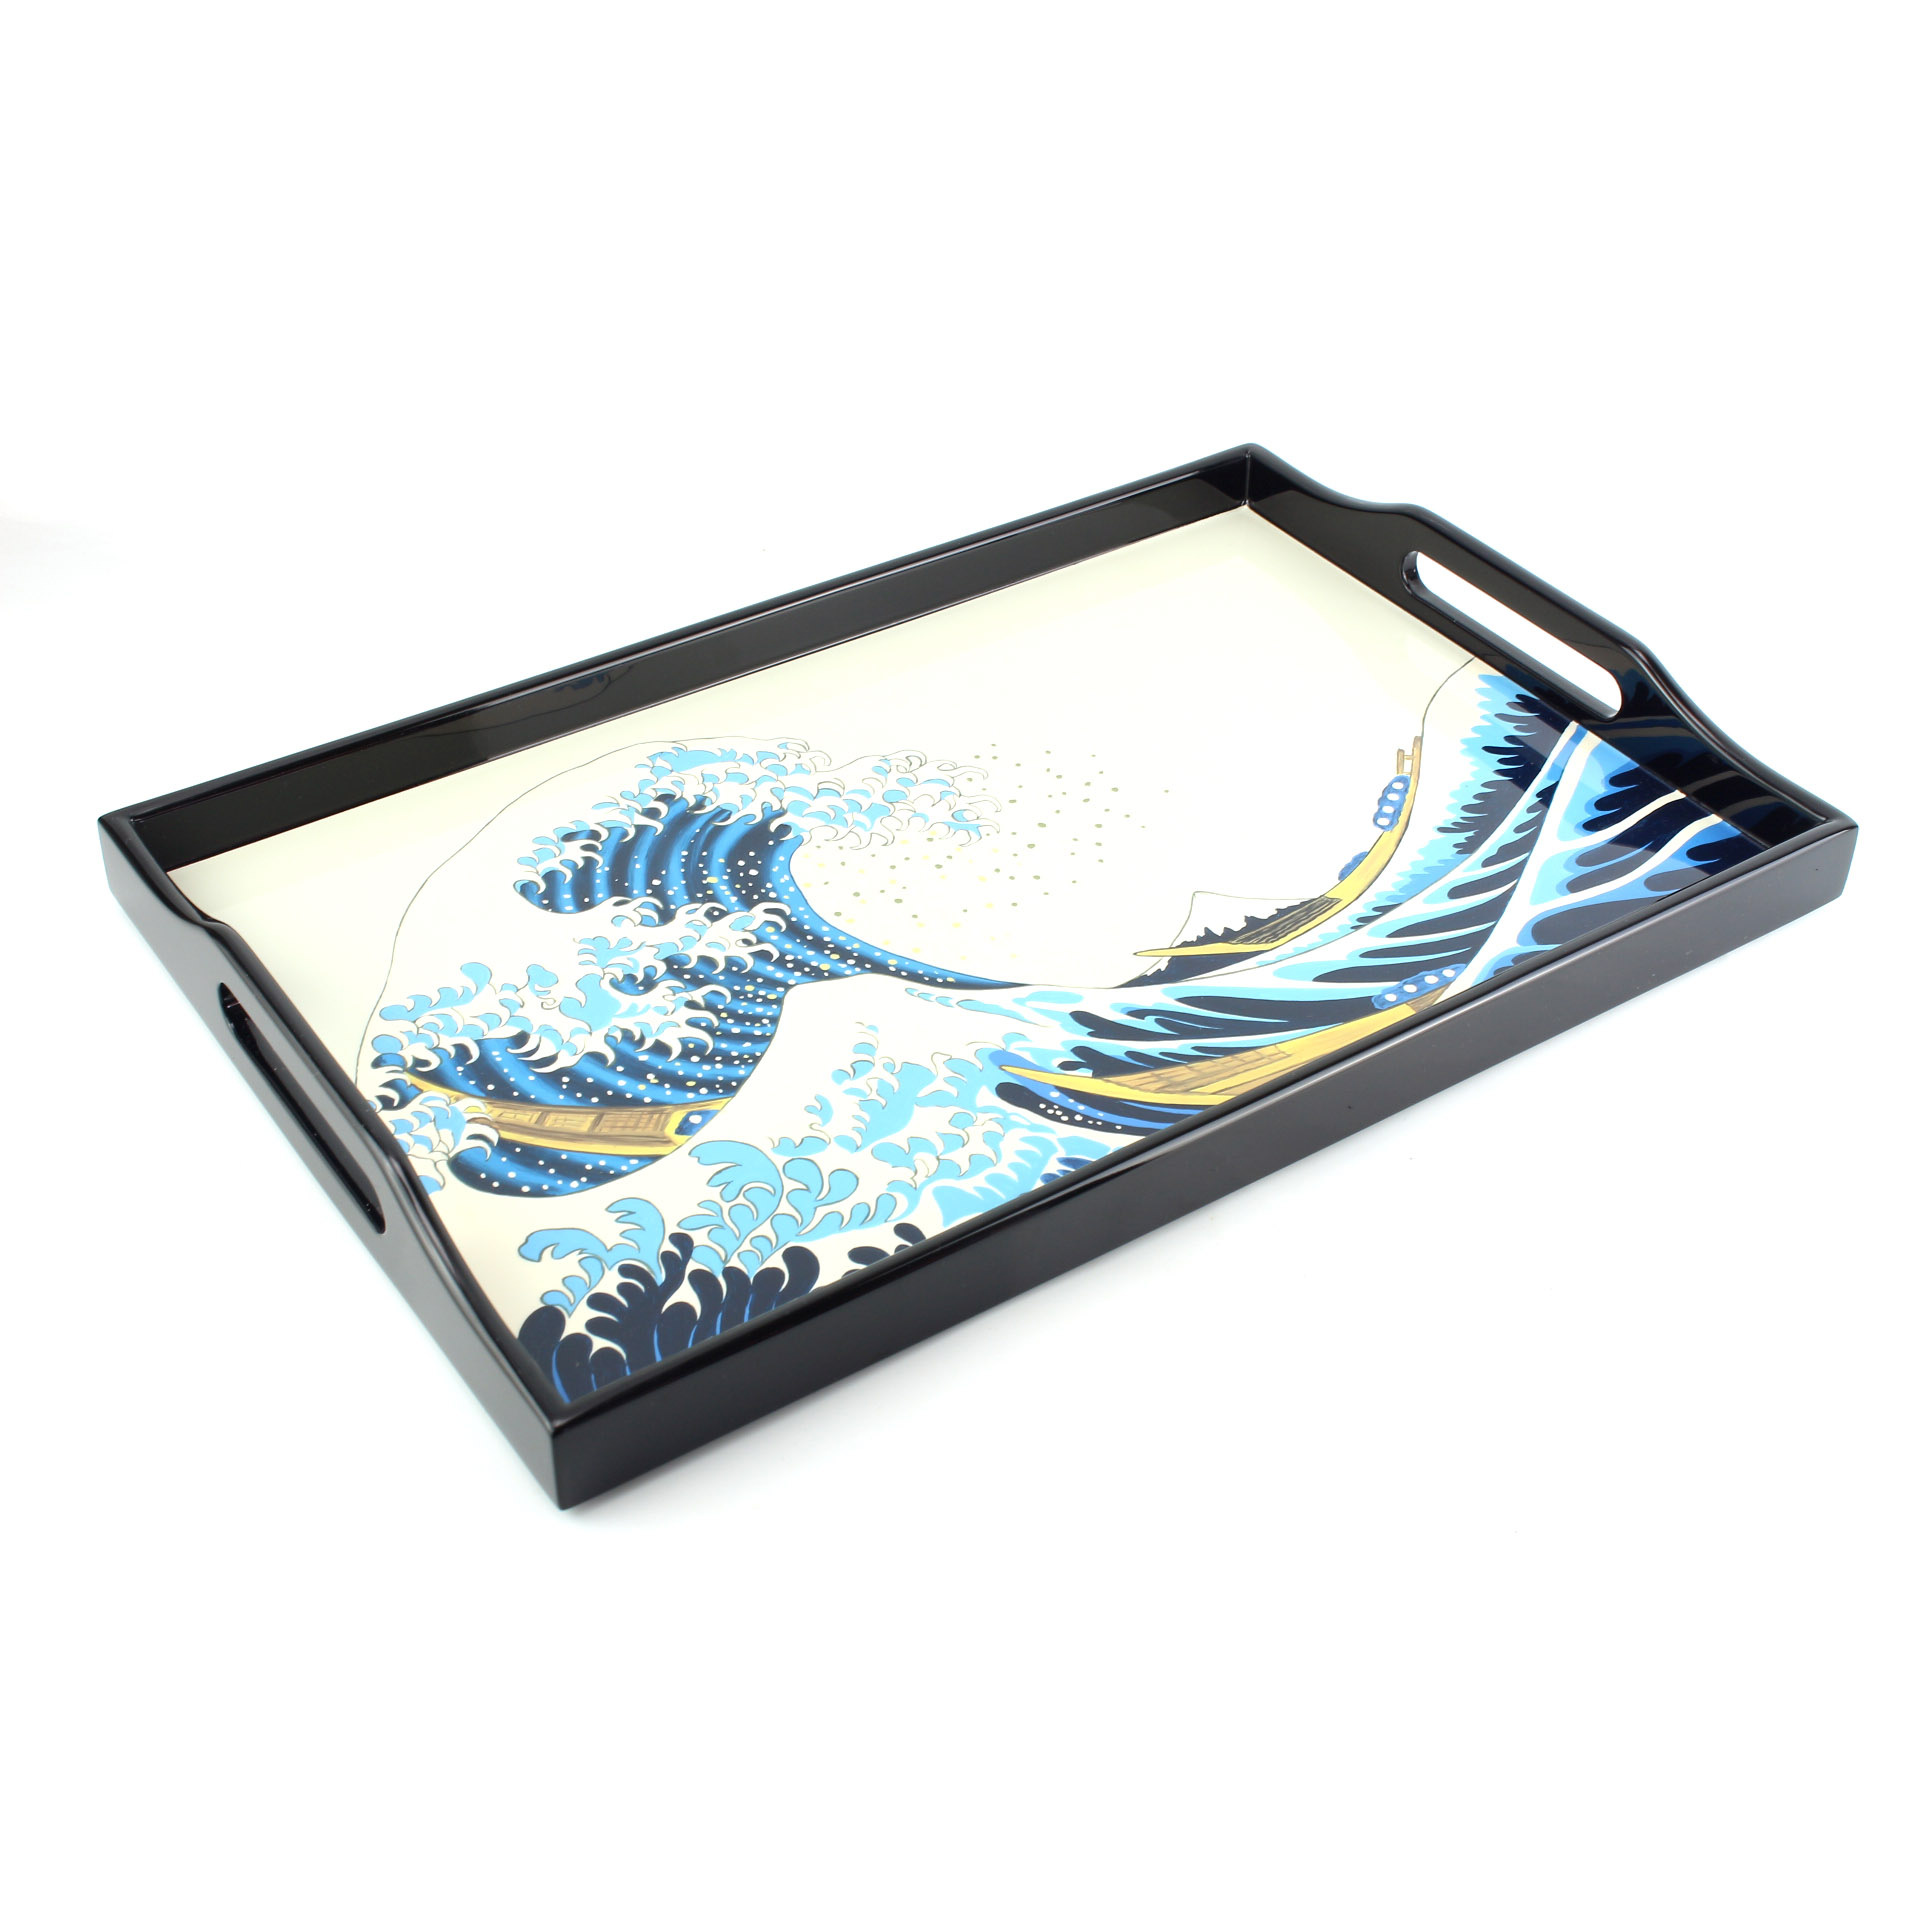 'The Great Wave' Lacquer Tray